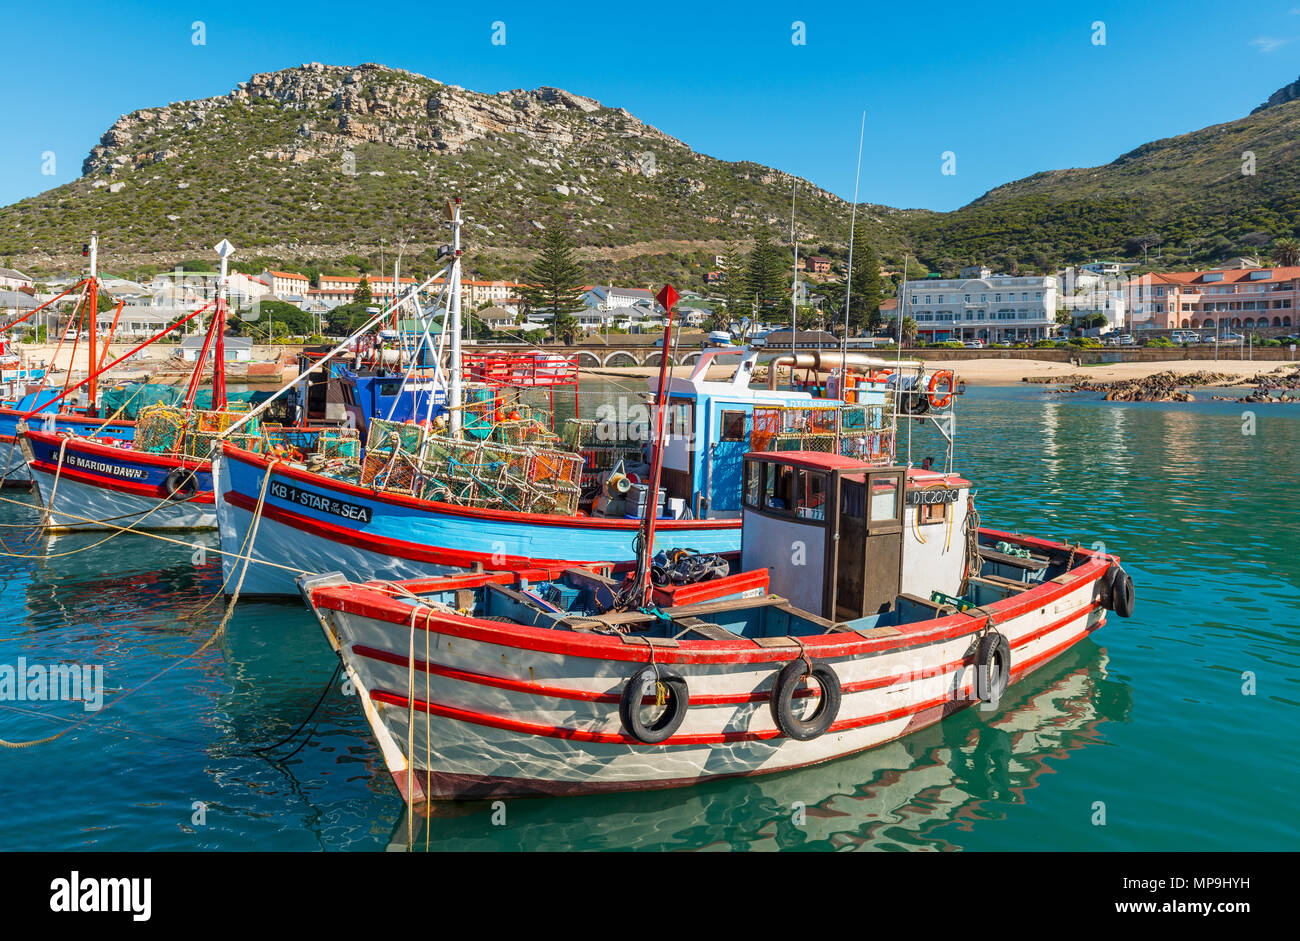 Fishing boats in the harbor of Kalk Bay with the Table Mountain range in the background near Cape Town, Western Cape Province, South Africa. - Stock Image